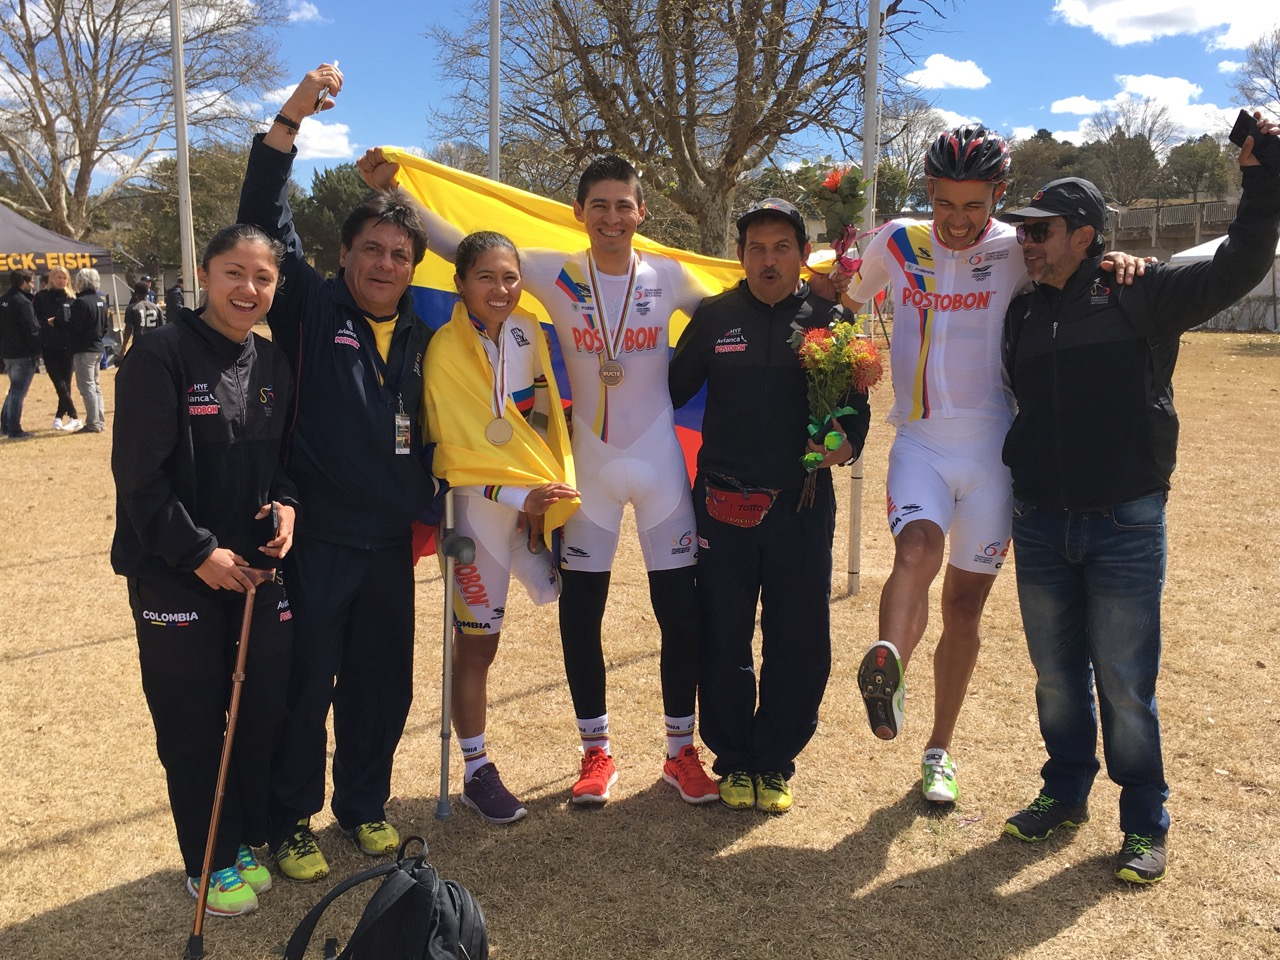 Team Colombia proudly celebrate their medals during the Time Trial on Day 2 of the 2017 UCI Para-cycling Road World Championships held at Midmar Dam Howick, South Africa, on Friday 1 September 2017. Photo credit: Mylene Paynter